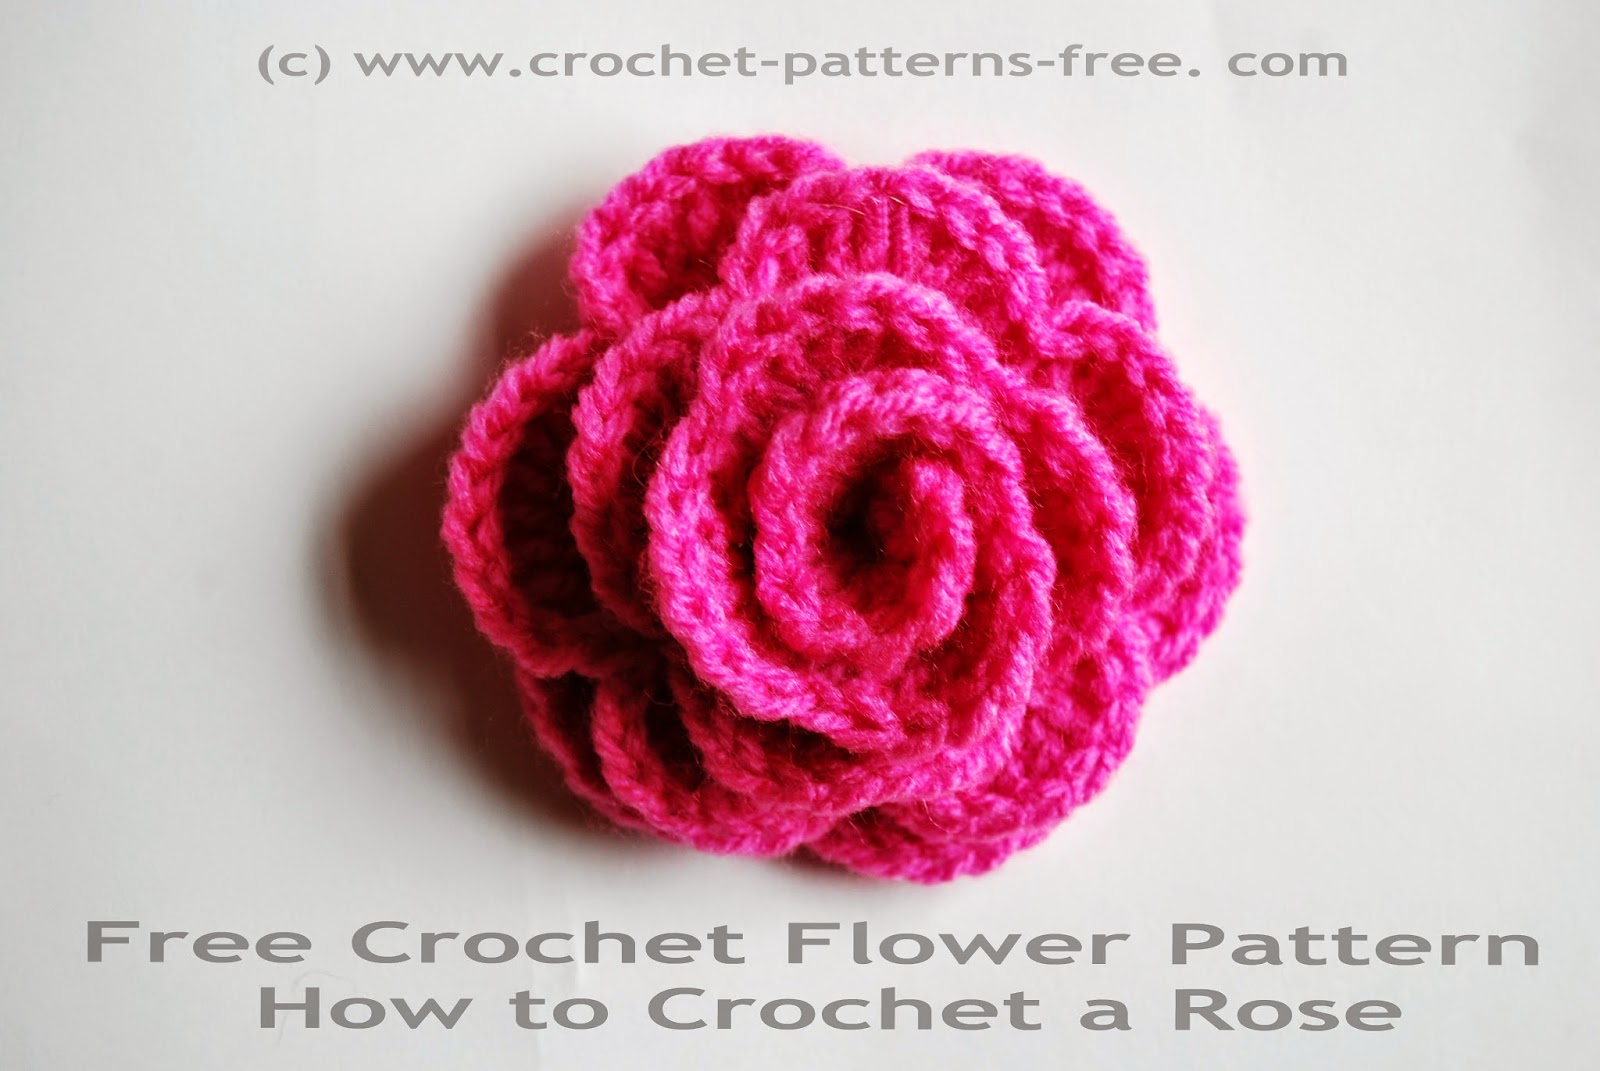 Crochet A Flower : Free Crochet Flower Pattern How to crochet a rose Free Crochet